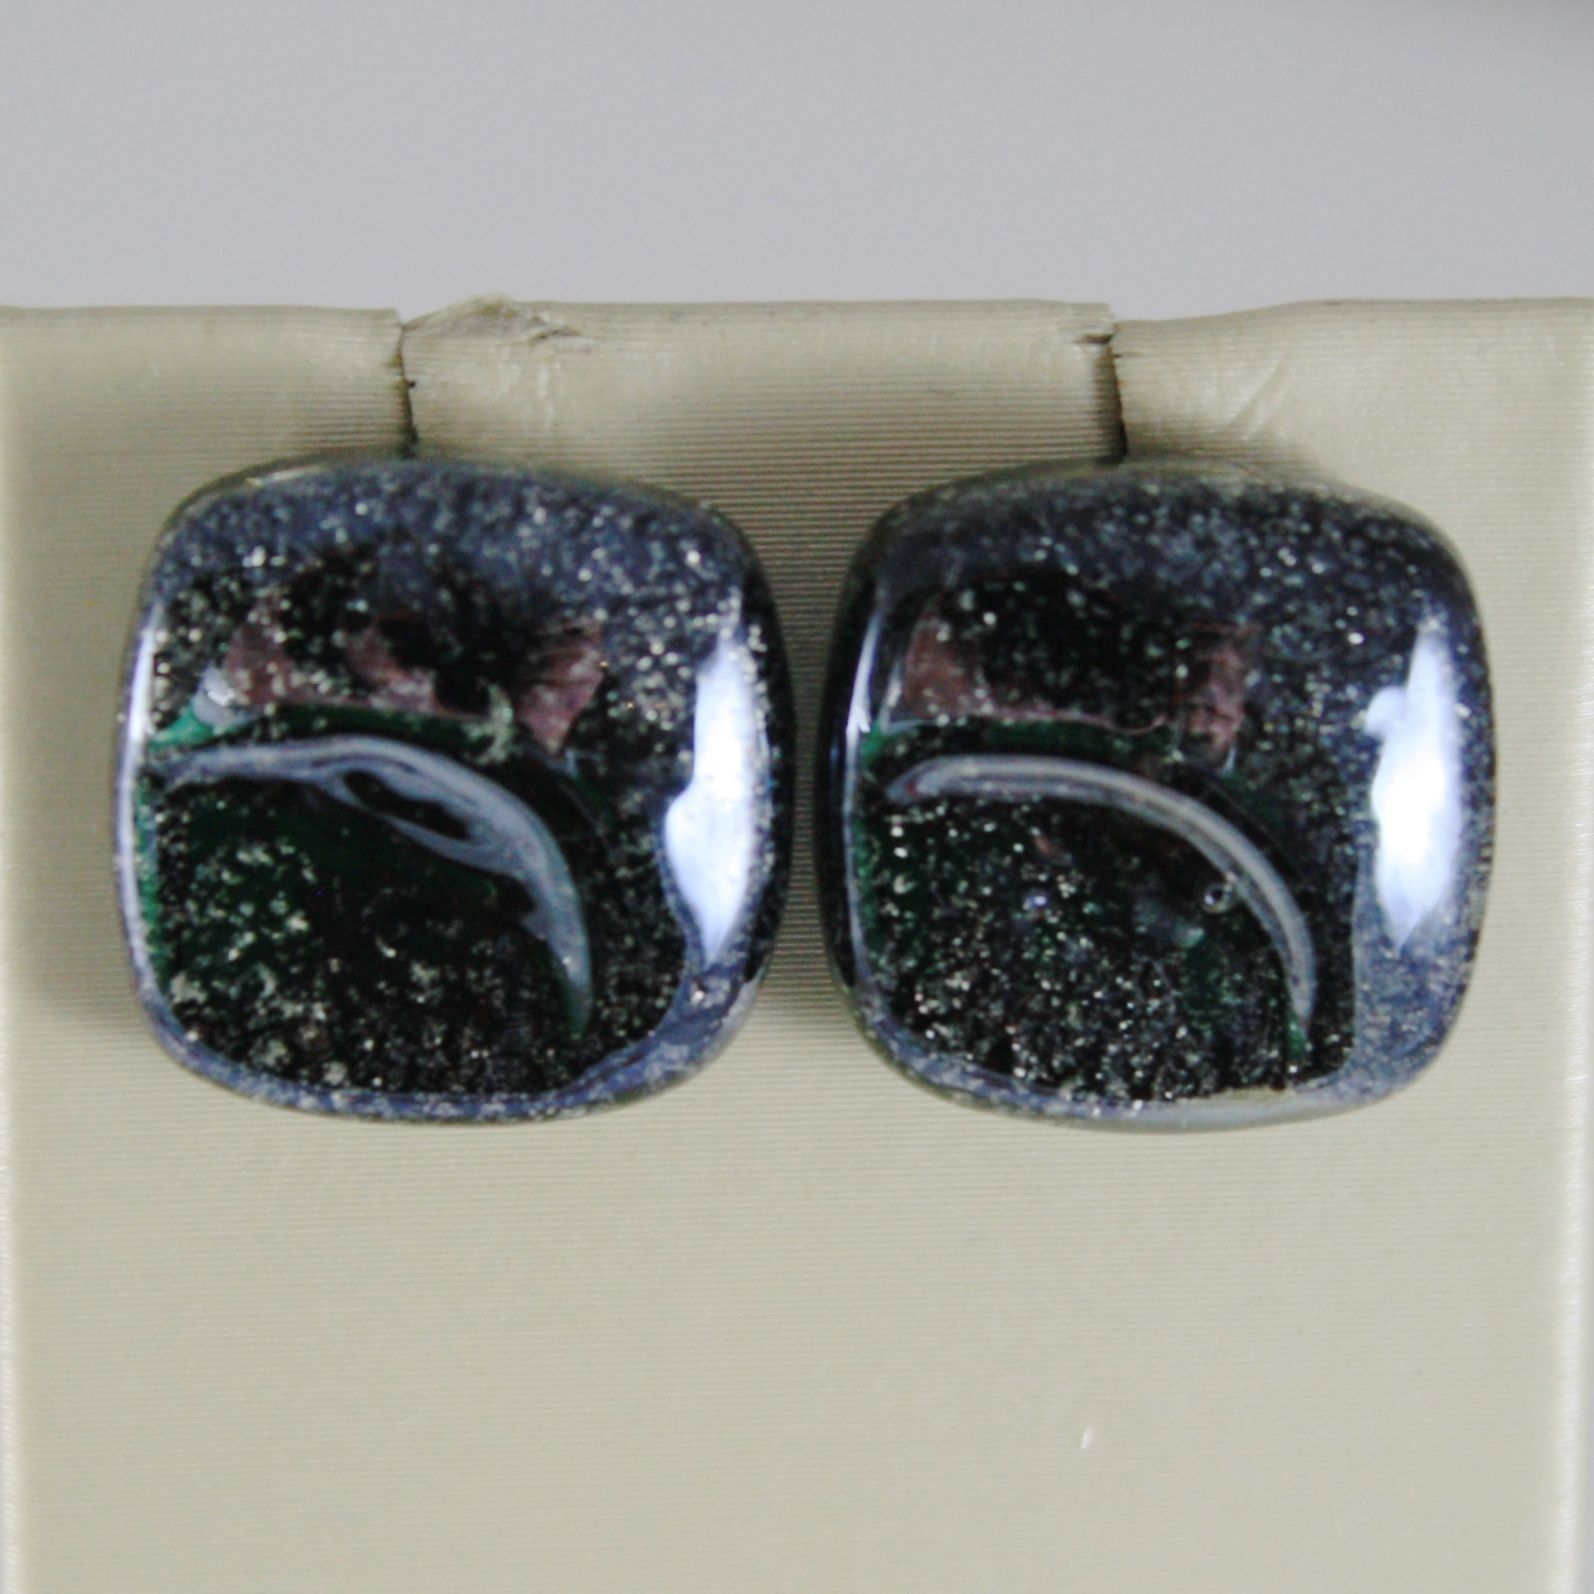 EARRINGS ANTICA MURRINA VENEZIA WITH MURANO GLASS GRAY AND BLACK OR530A14